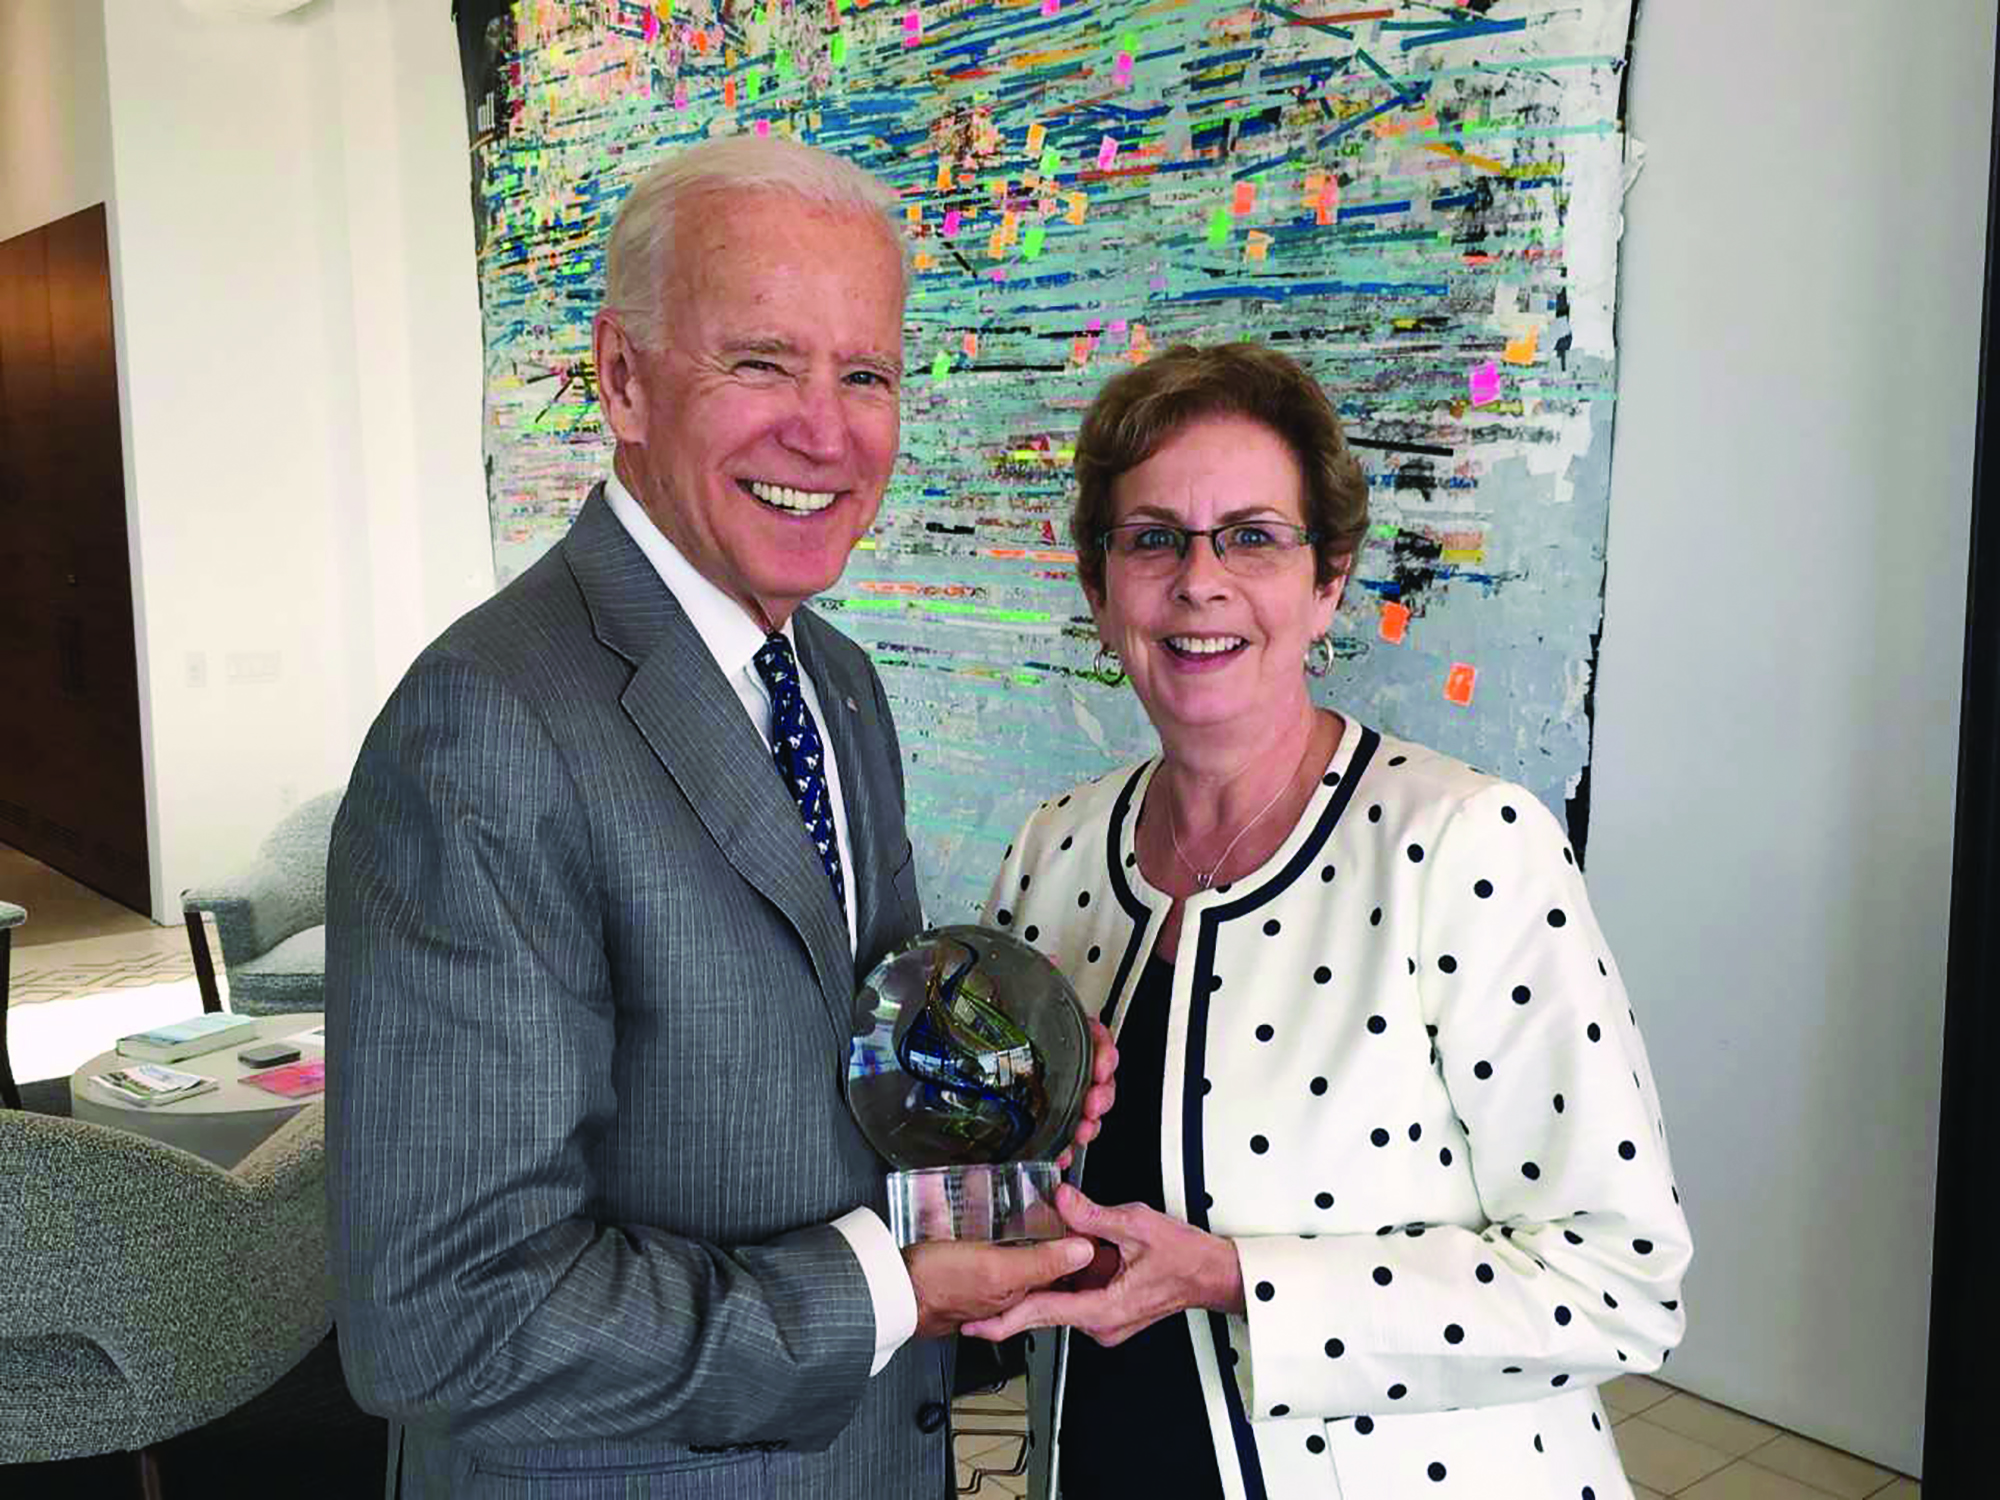 Former Vice President Joe Biden and Past ONS President Susan Schneider